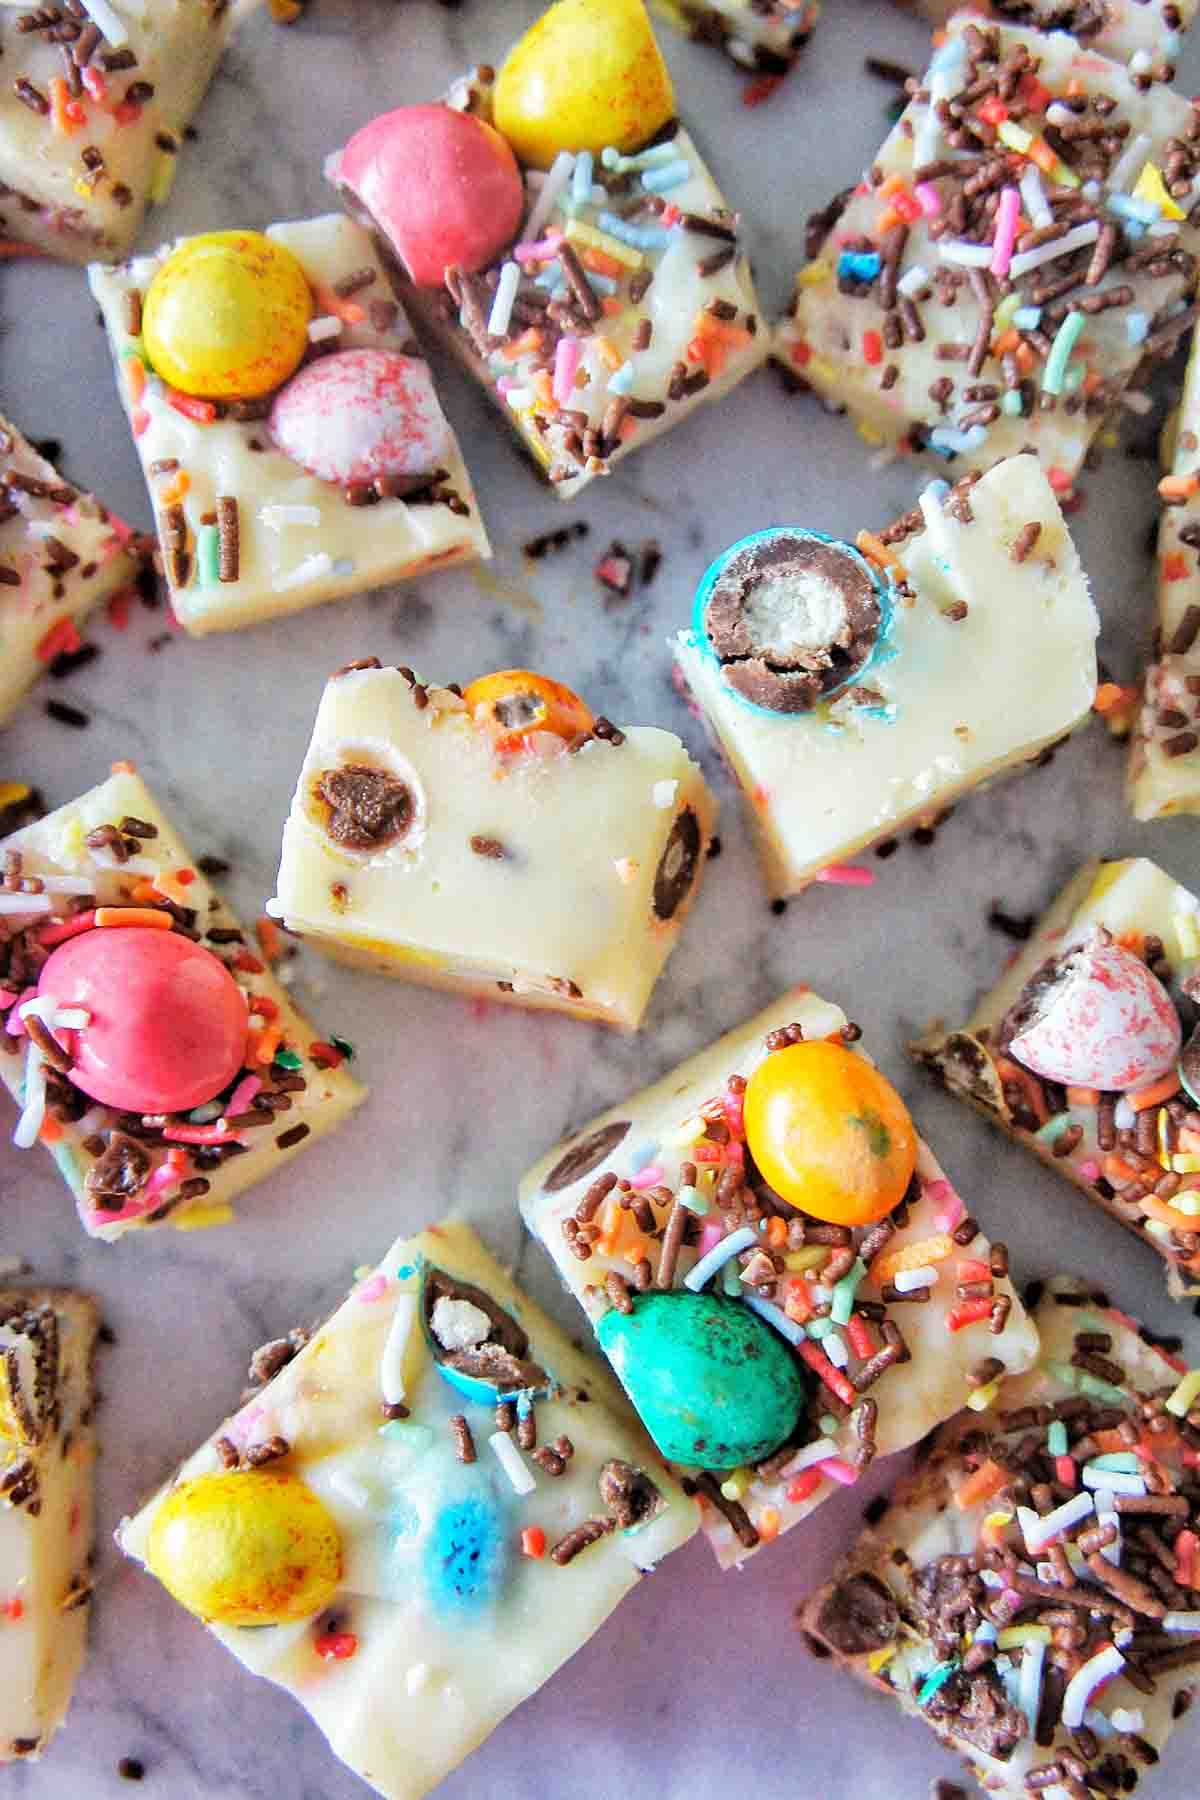 Easter Fudge cut into pieces on a white background